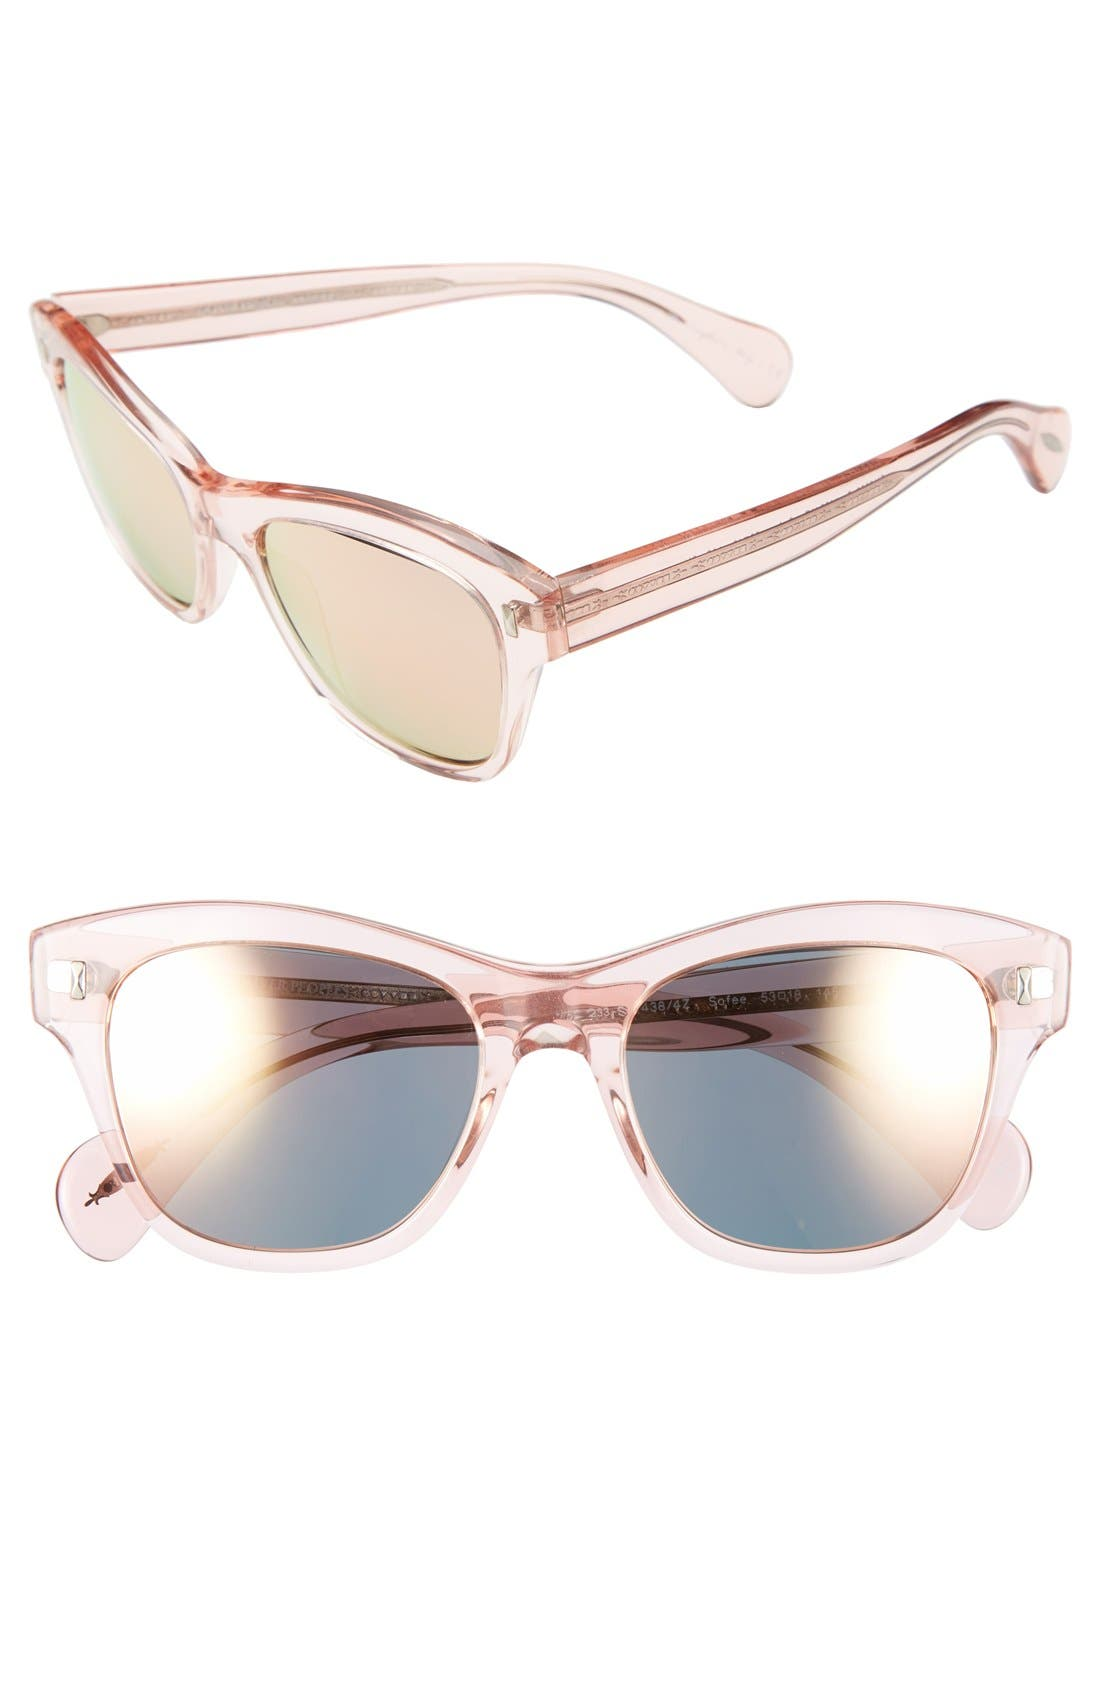 Alternate Image 1 Selected - Oliver Peoples 'Sofee' 53mm Retro Sunglasses (Nordstrom Exclusive)